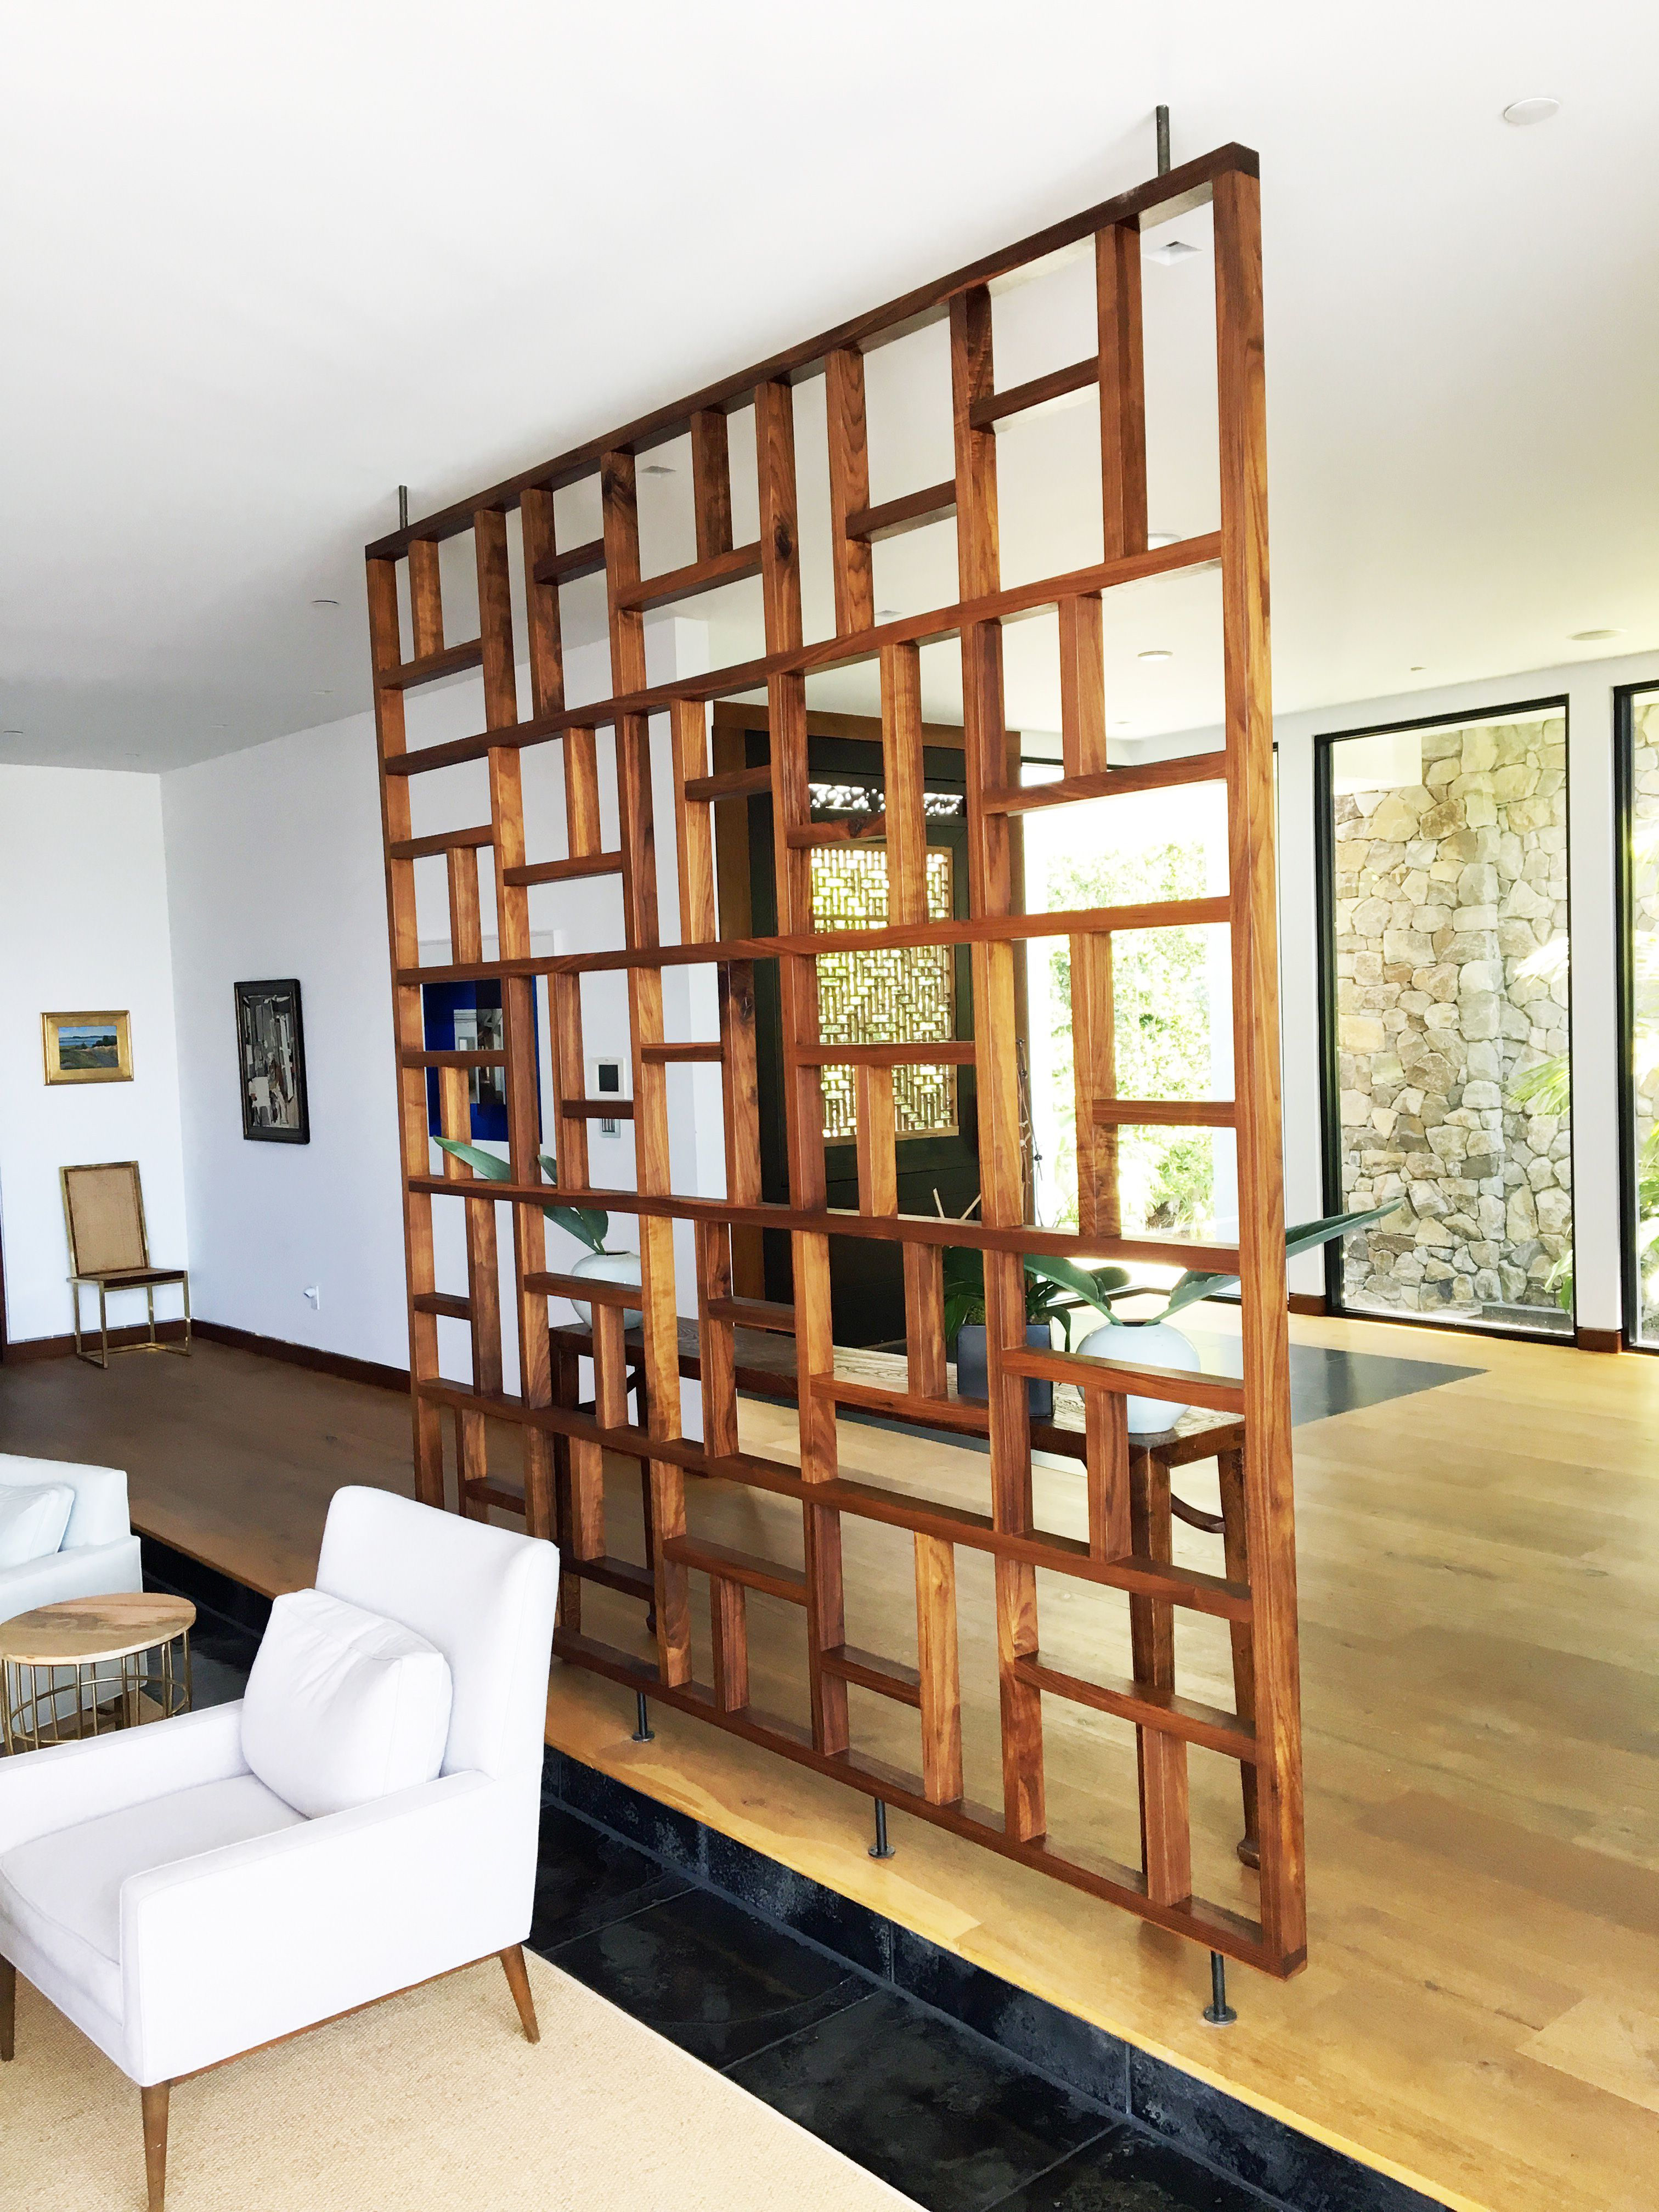 Partitions Designs Handmade Solid Wood Geometric Room Screen Room Divider By